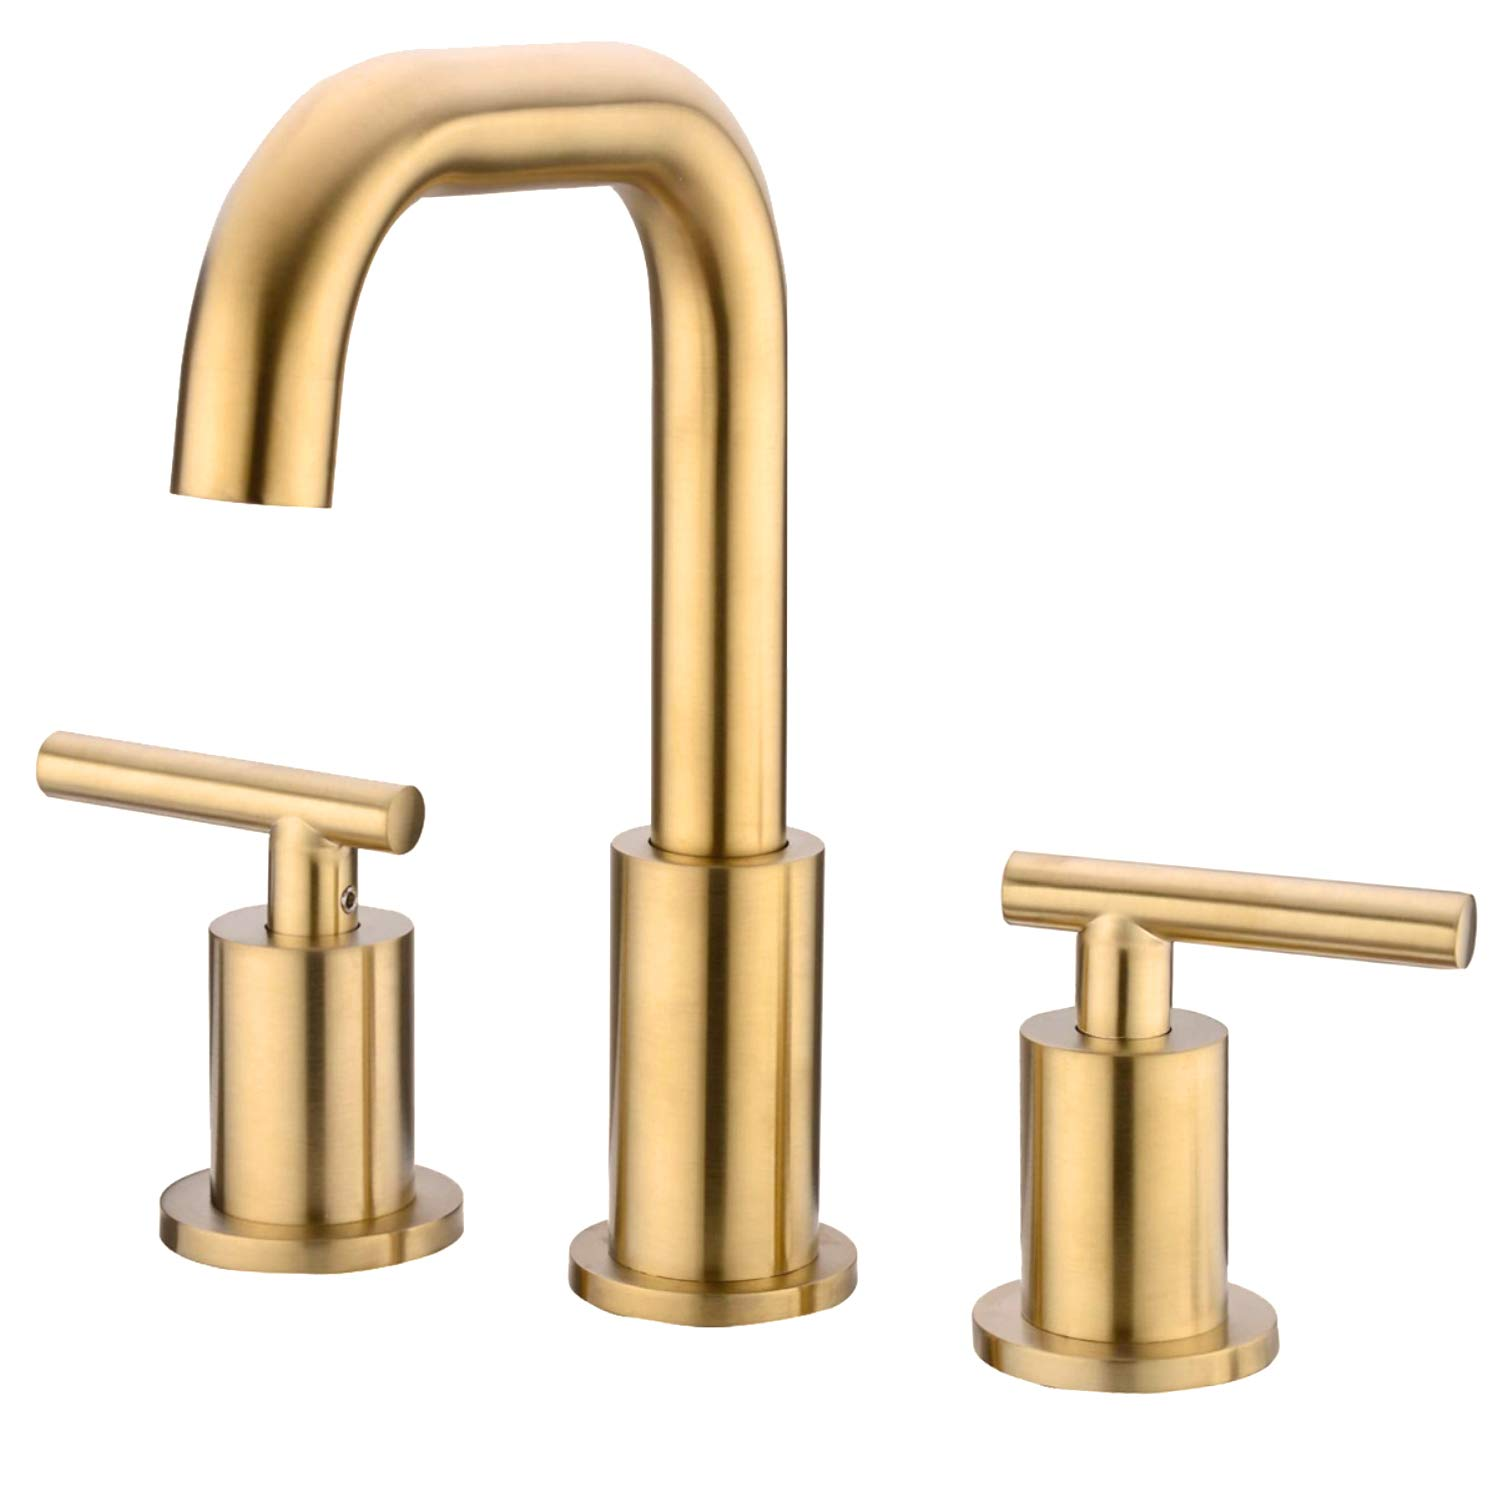 TRUSTMI 2-Handle 8-16 Inch Bathroom Sink Faucet 360-Degree Swivel Spout 3 Hole Deck Mounted with cUPC Water Supply Hoses, Brushed Gold by TRUSTMI